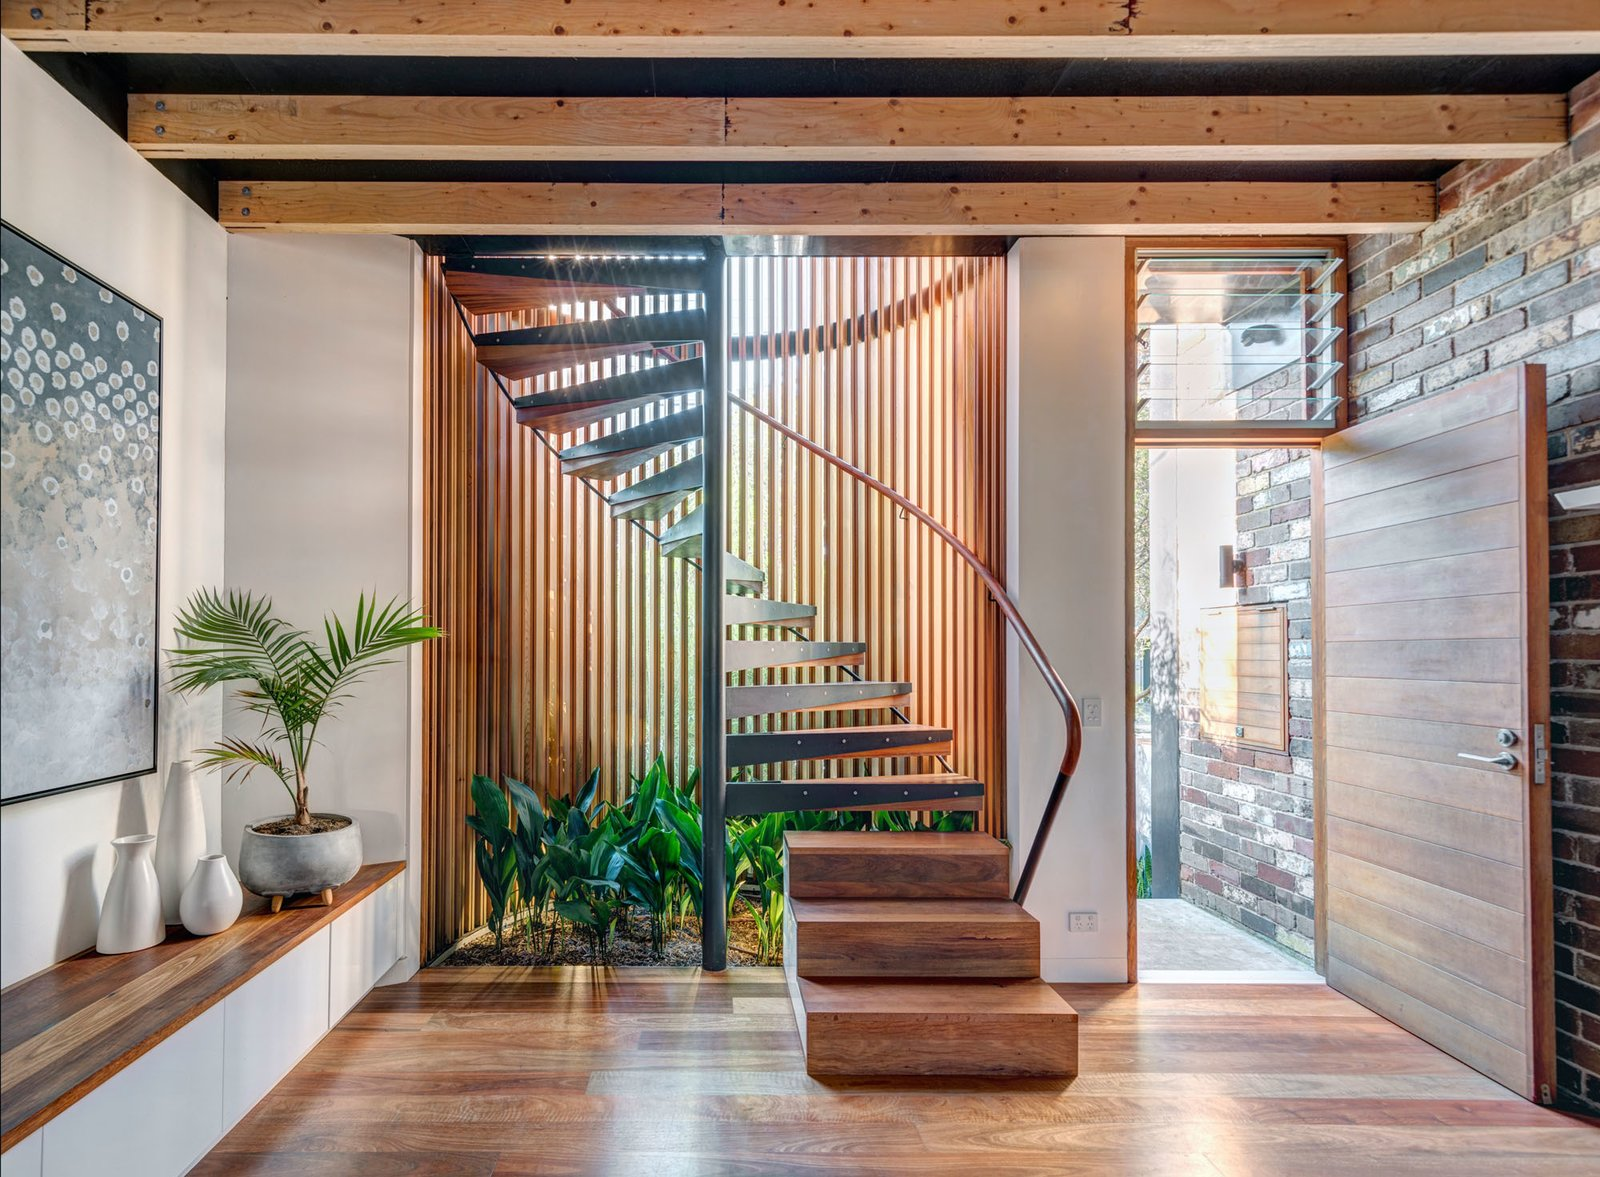 Staircase, Wood, Metal, and Wood  Staircase Wood Metal Photos from Aquas Perma Solar firma